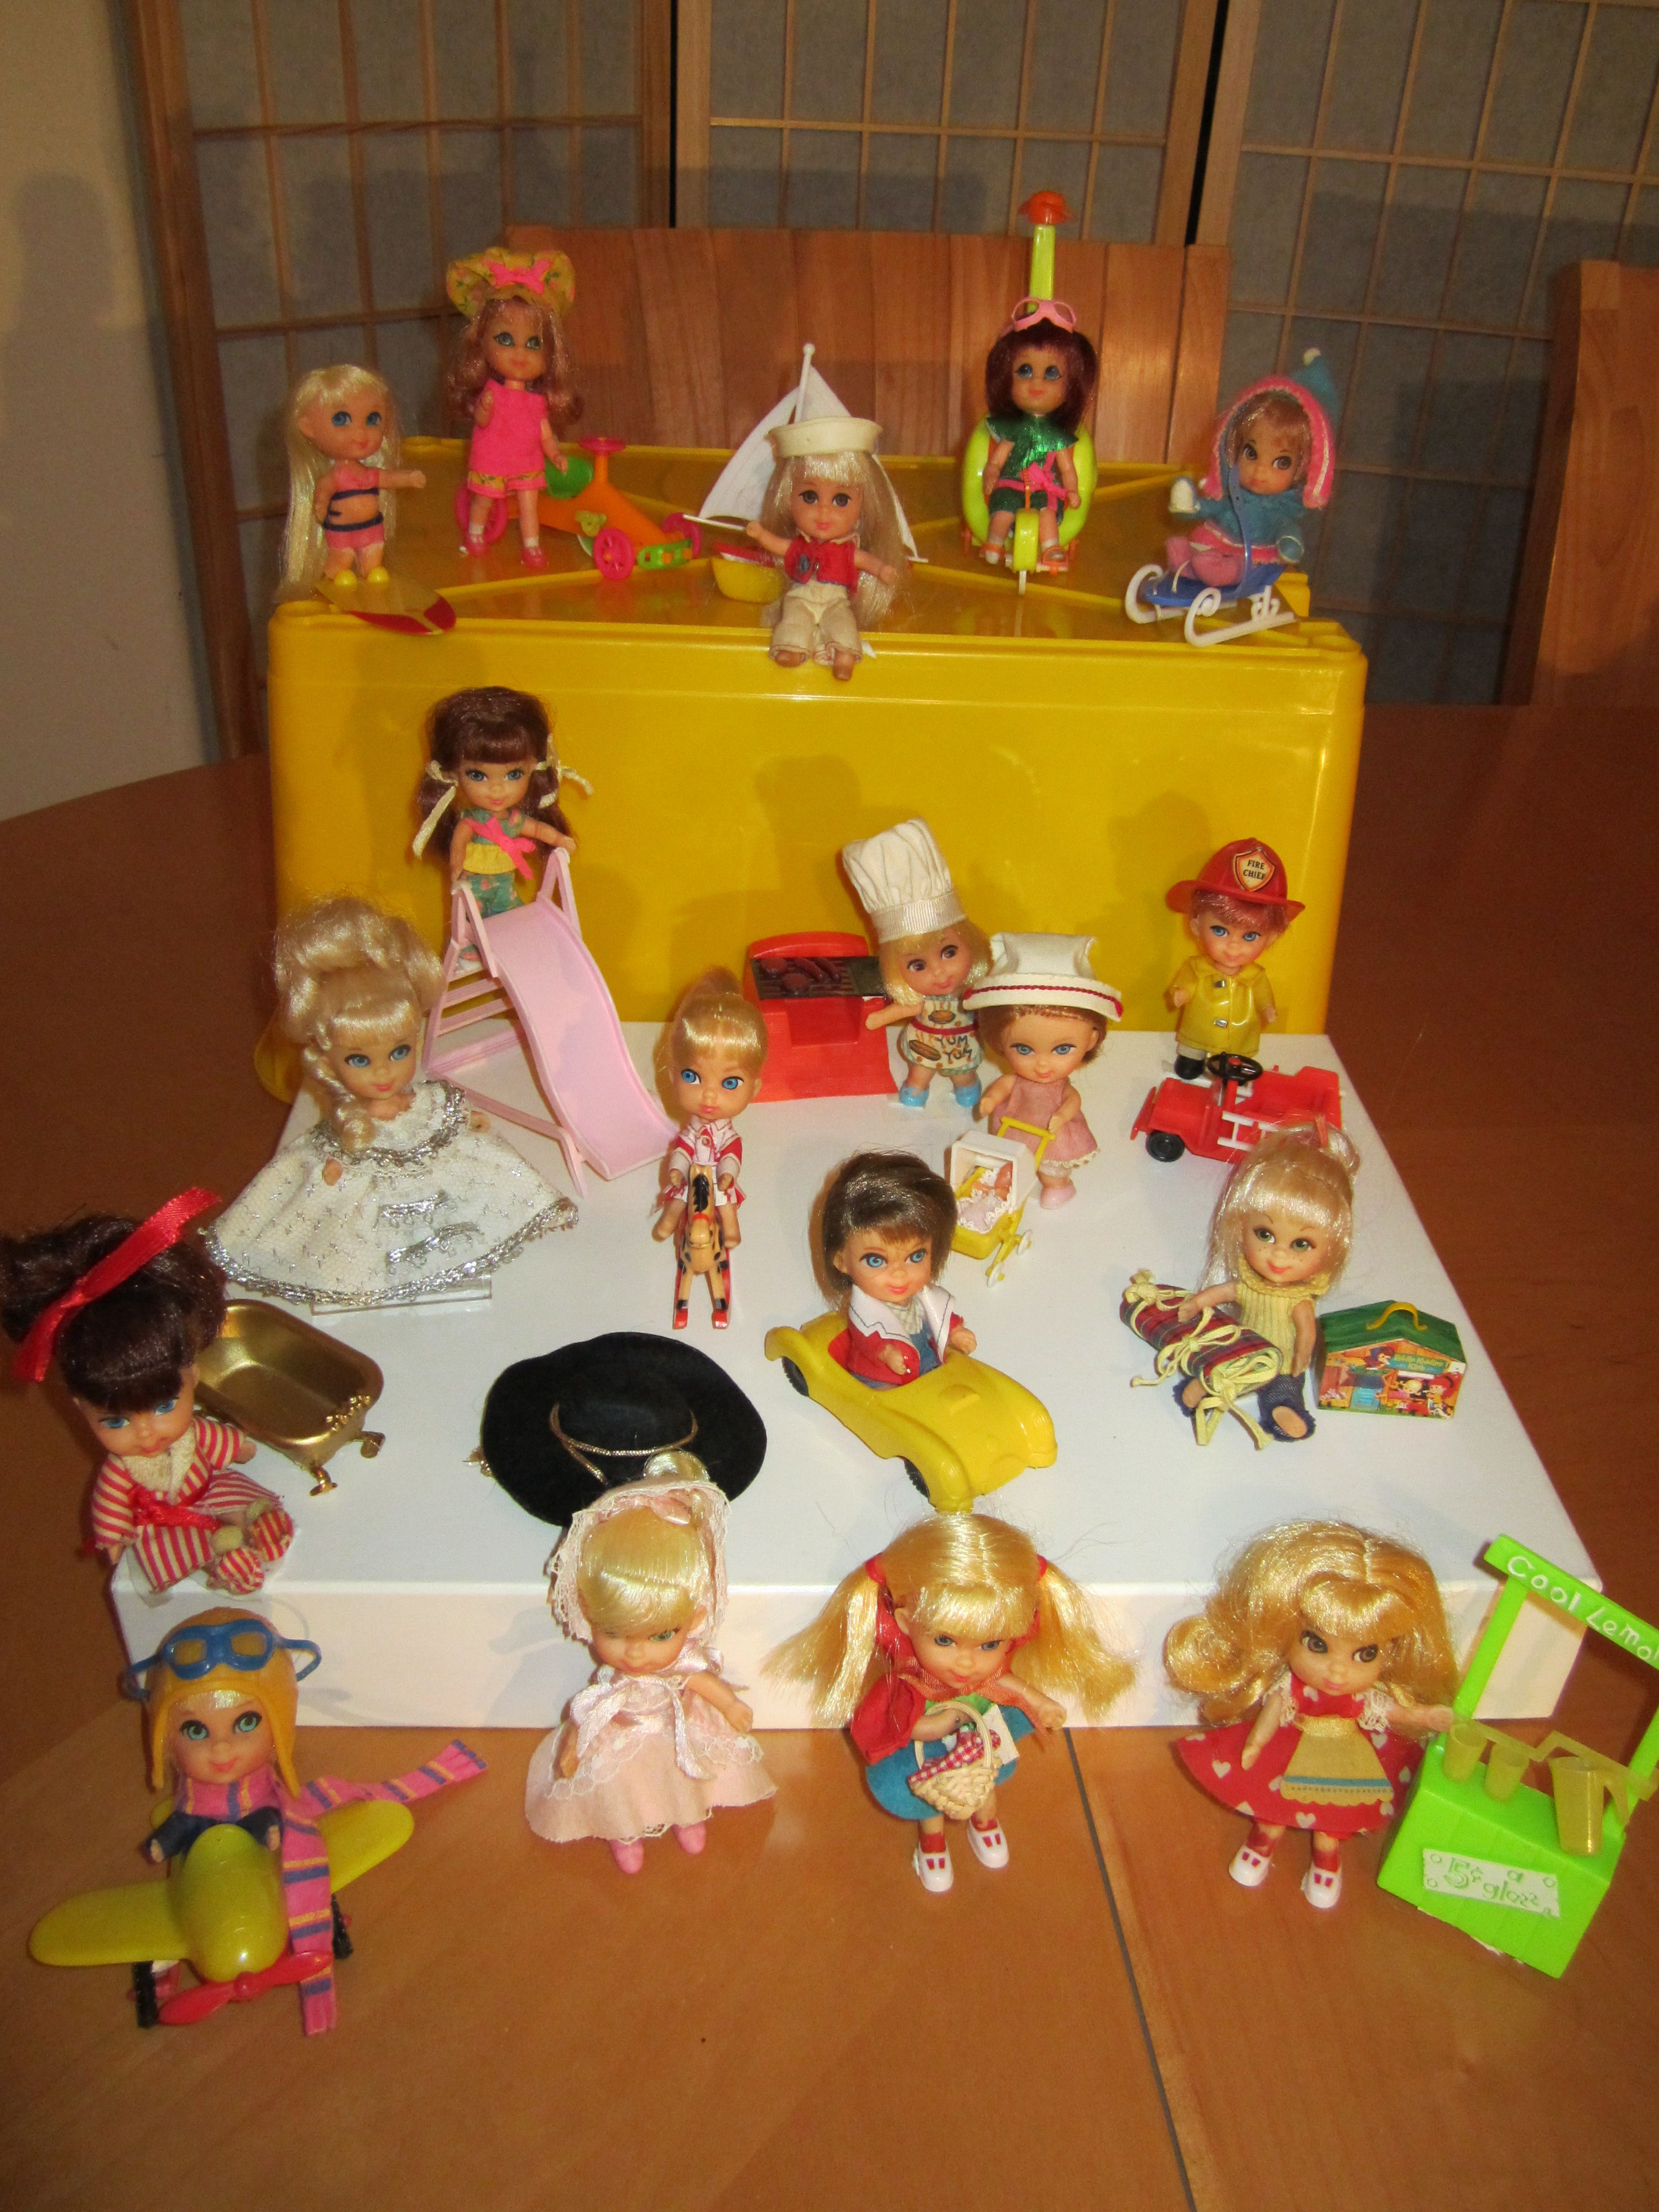 Toys images with names  Liddle Kiddle collection  Little KiddlesDawn DollsFlatsy Dolls